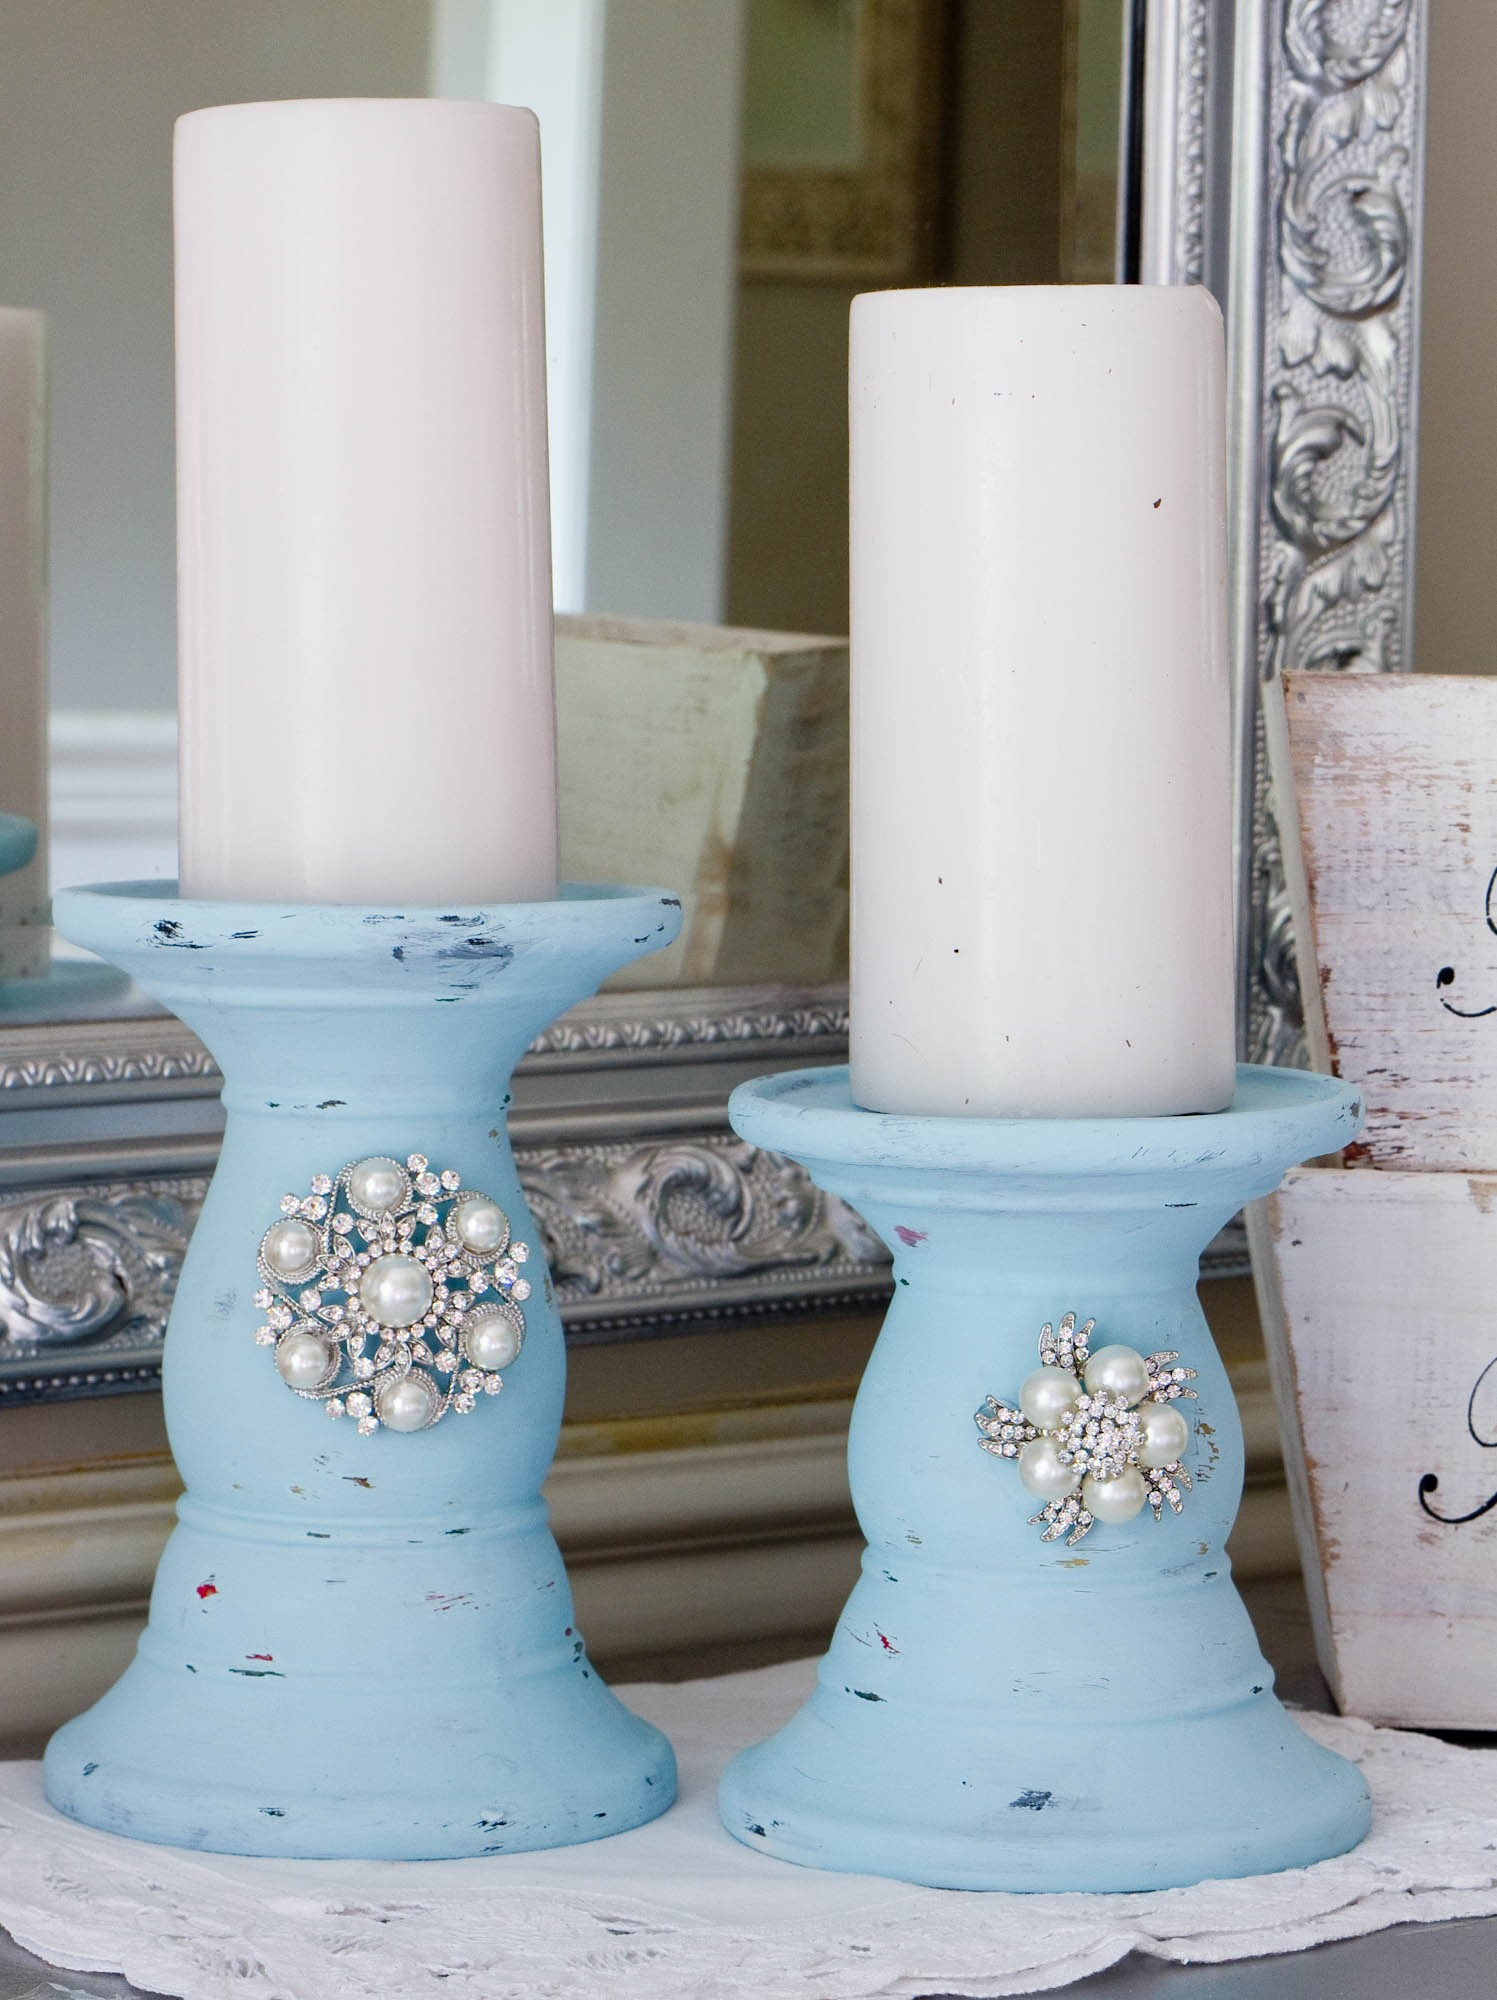 9. Lavish Look Candlesticks via Simphome